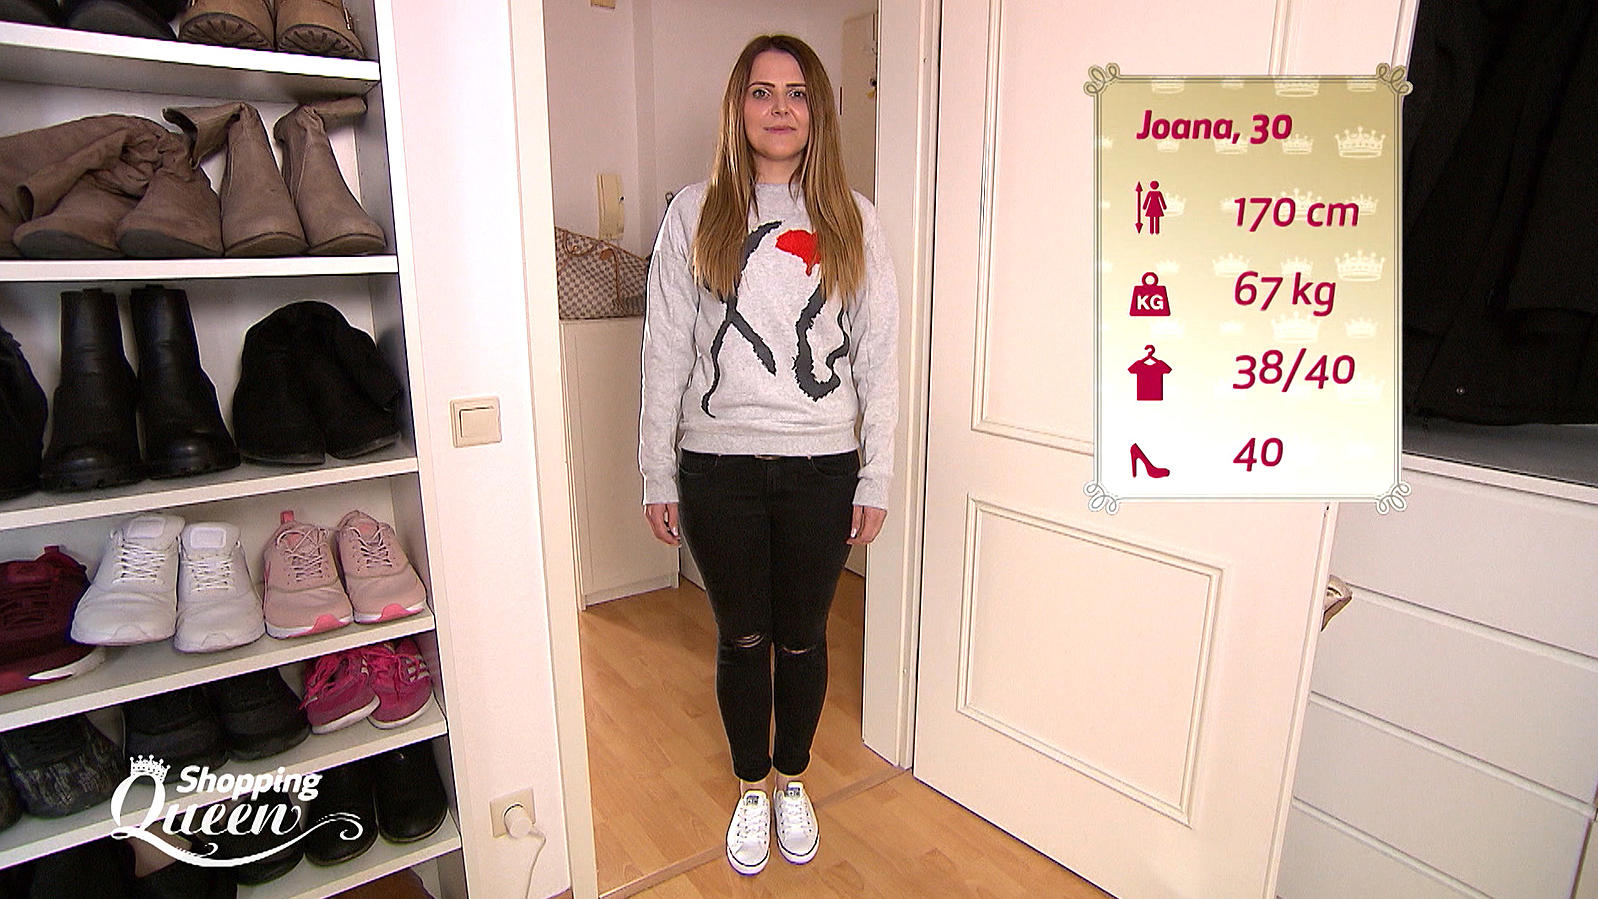 Shoppen In Hannover Shopping Queen Joana Aus Hannover Im Style Check